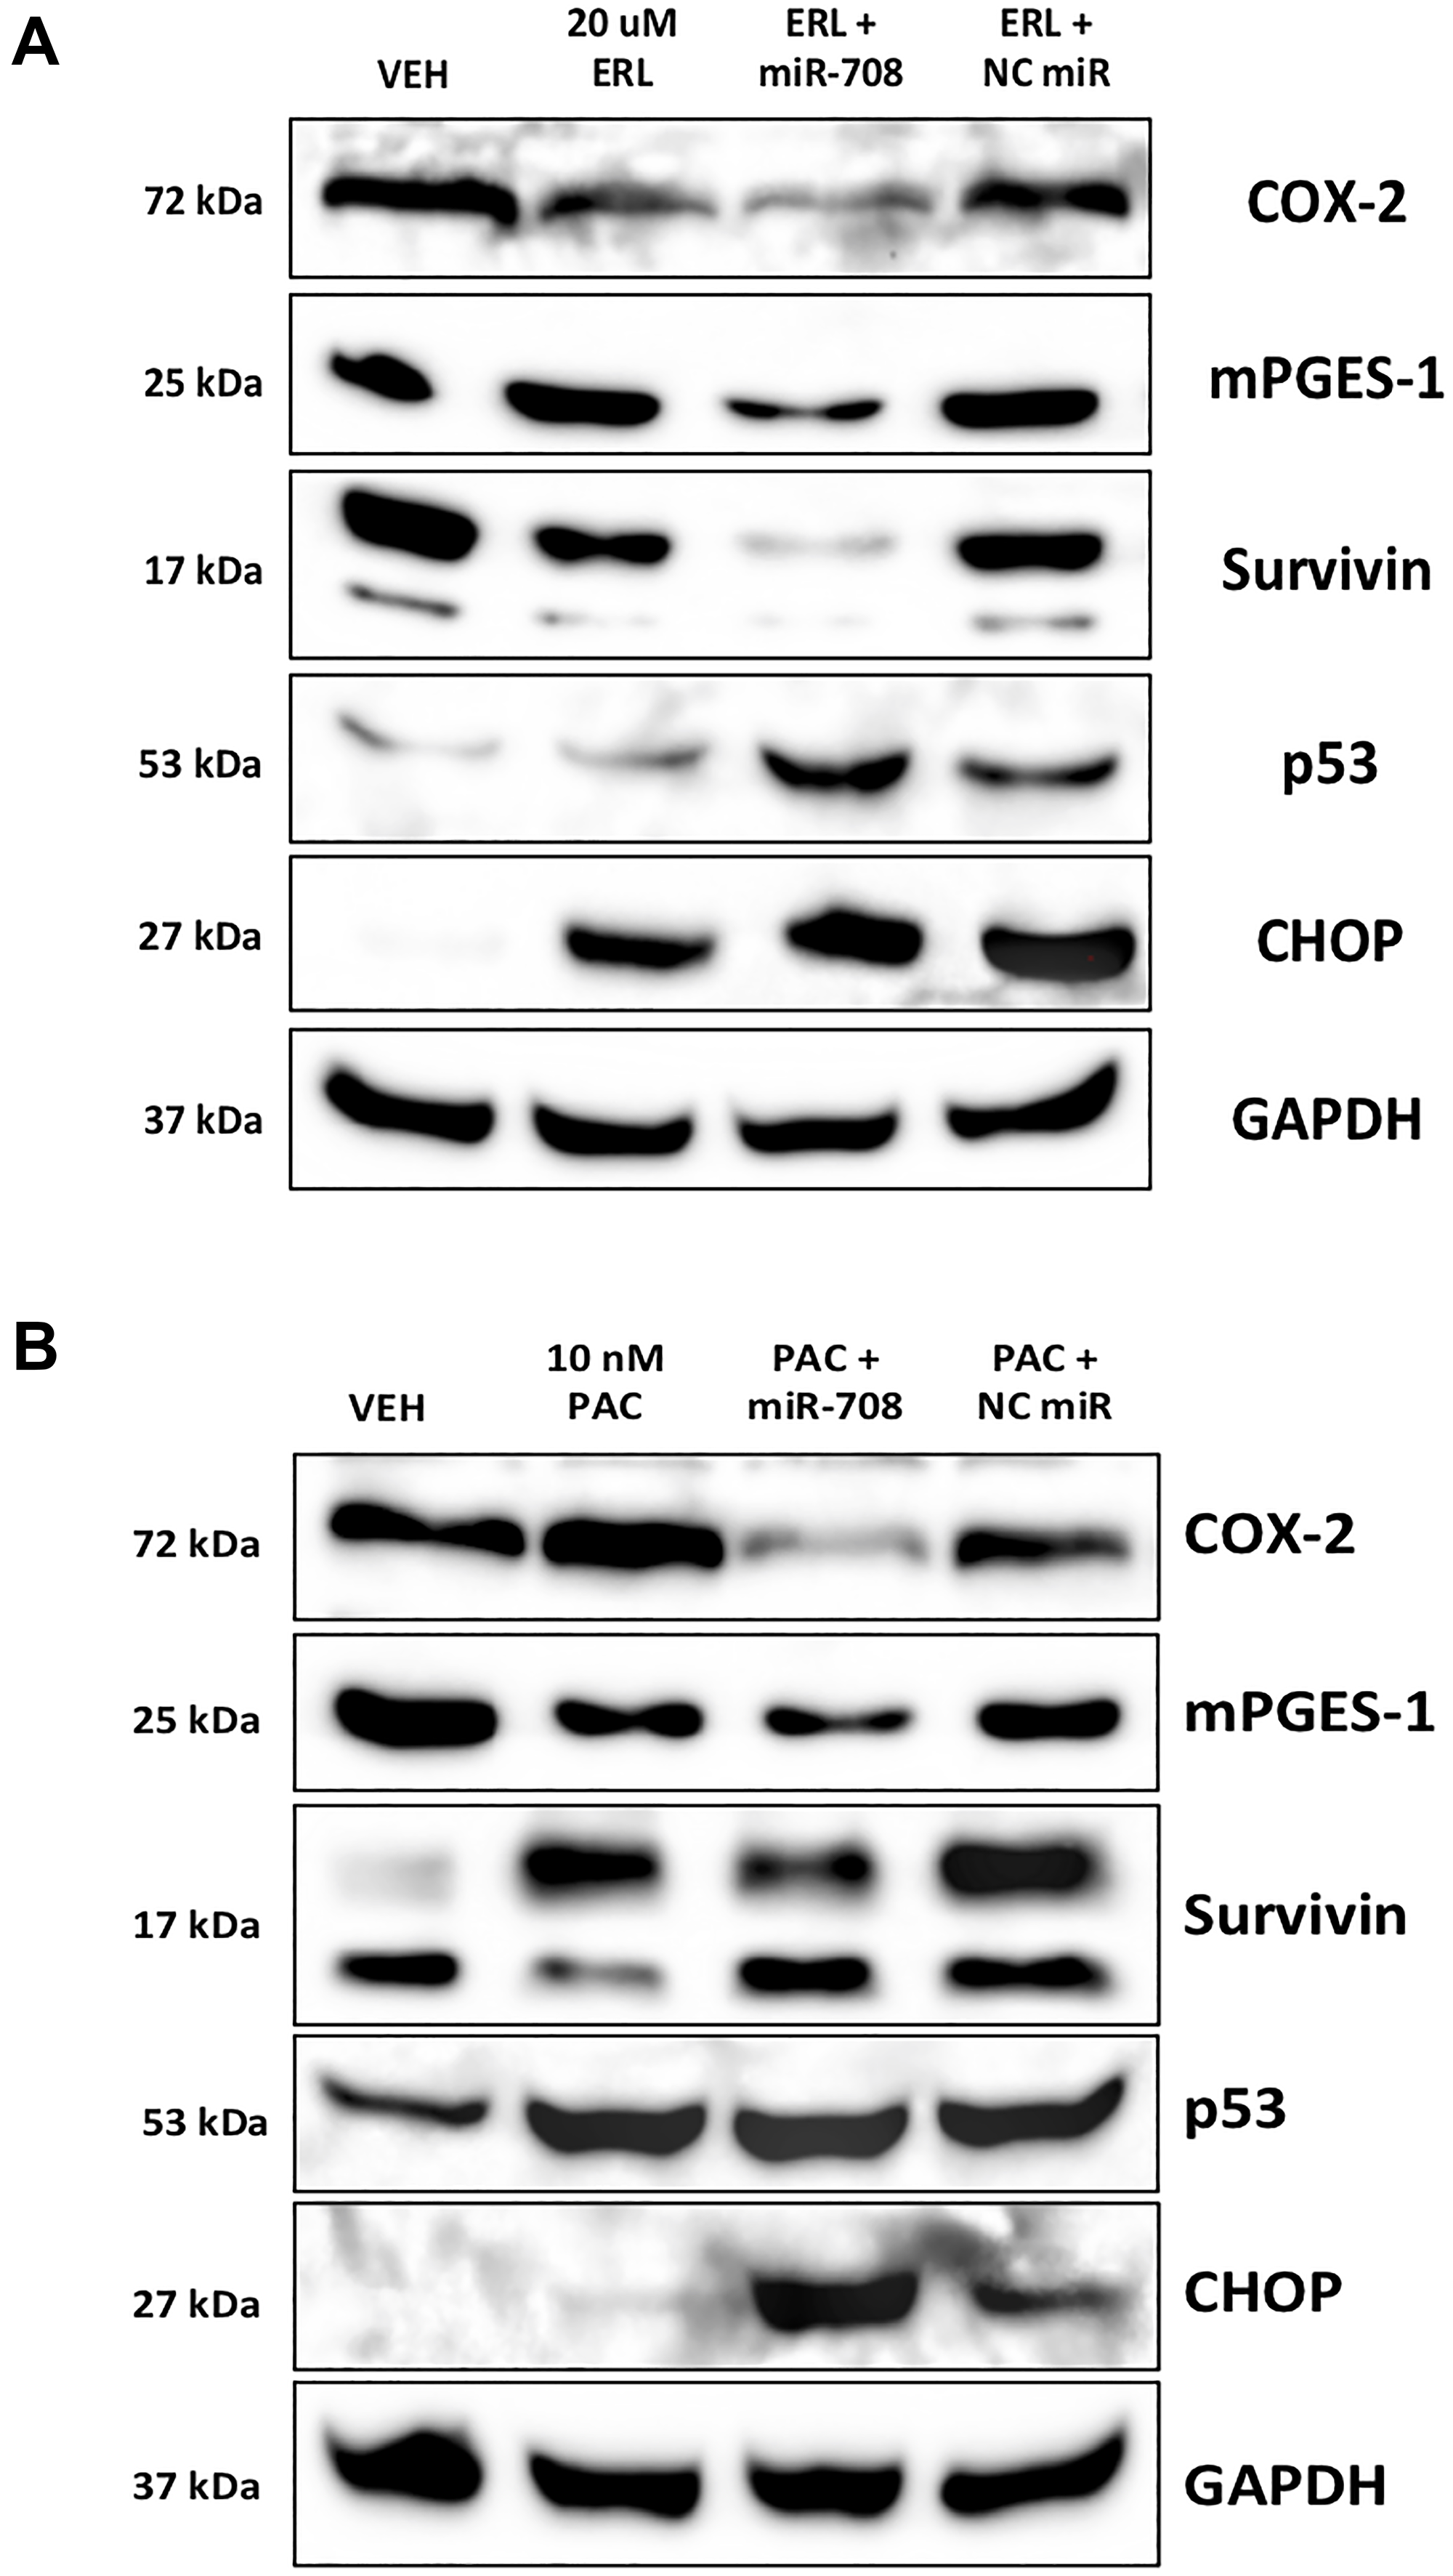 miR-708-5p enhances ERL/PAC regulation of AA pathway and apoptotic signaling expression in lung cancer cells.